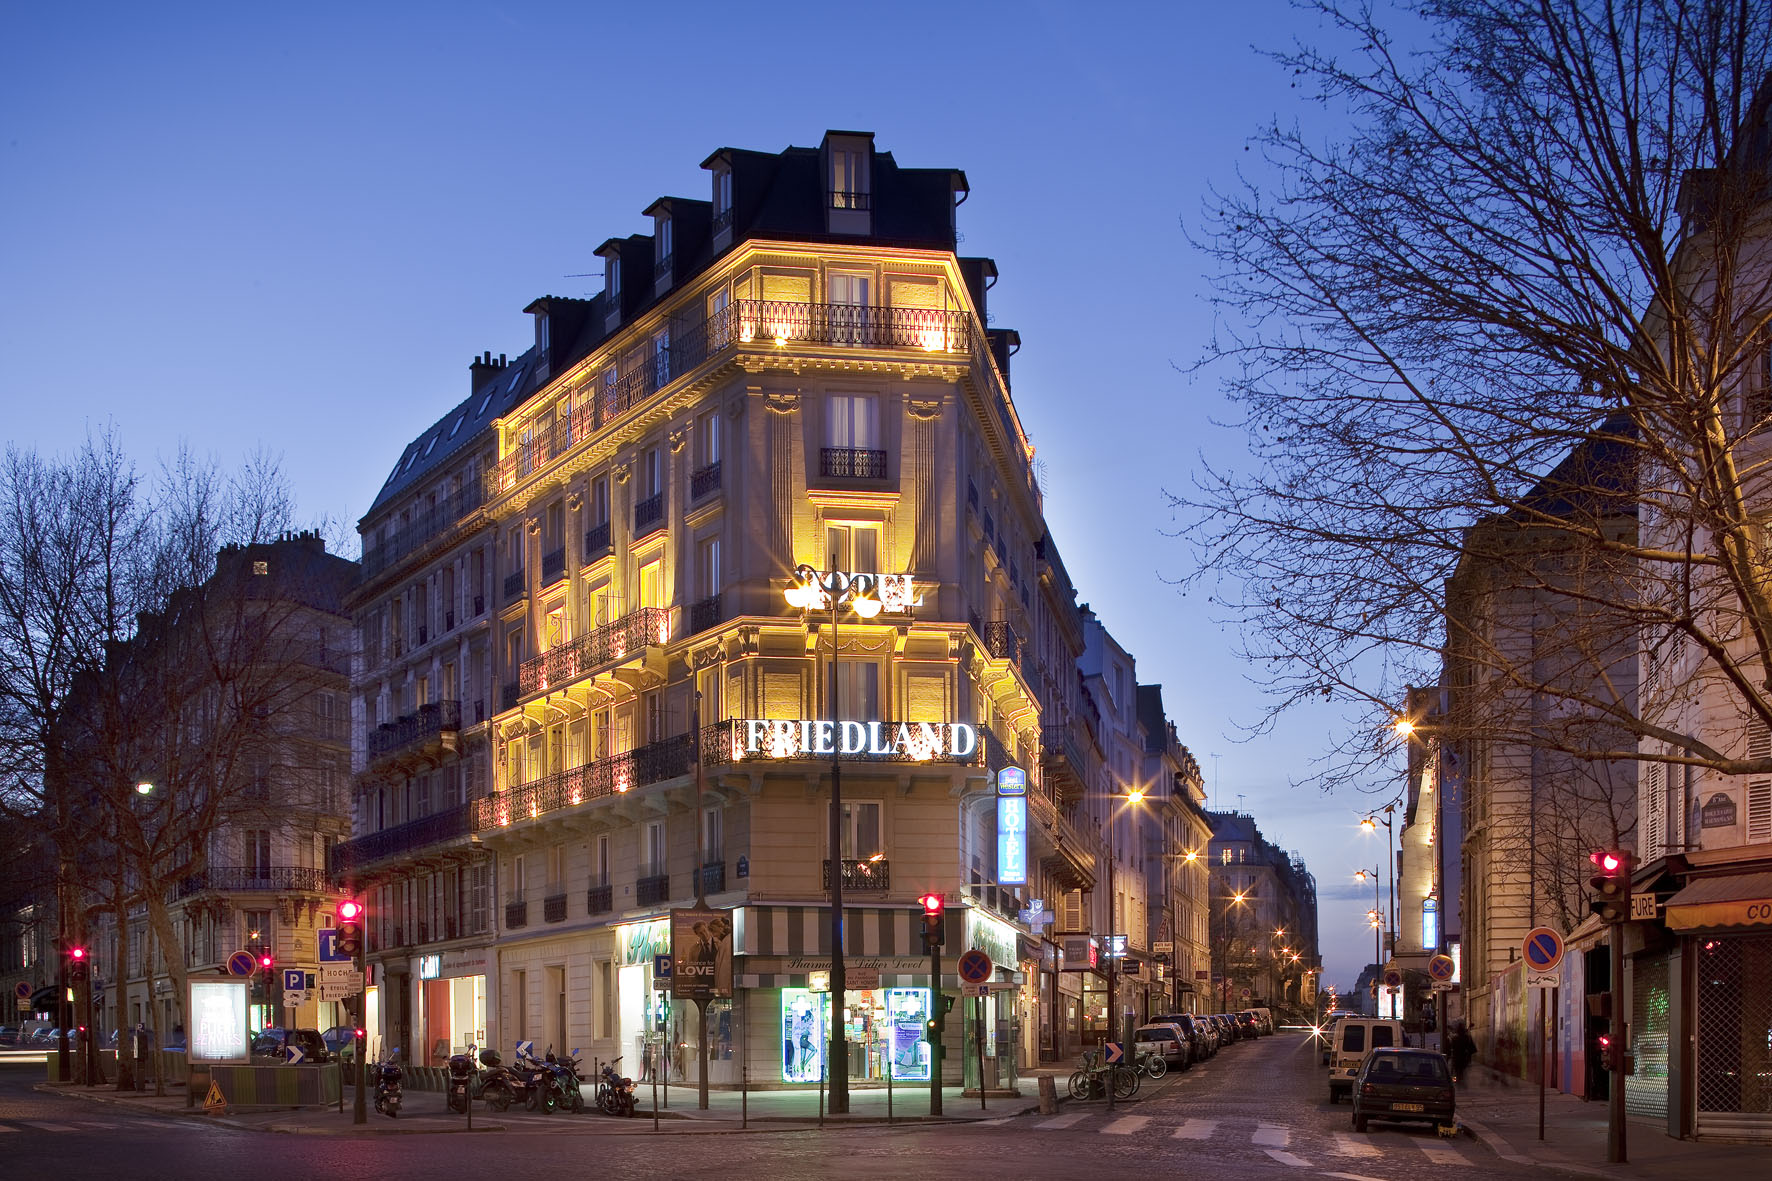 Hotel Champs-Elysees Friedland